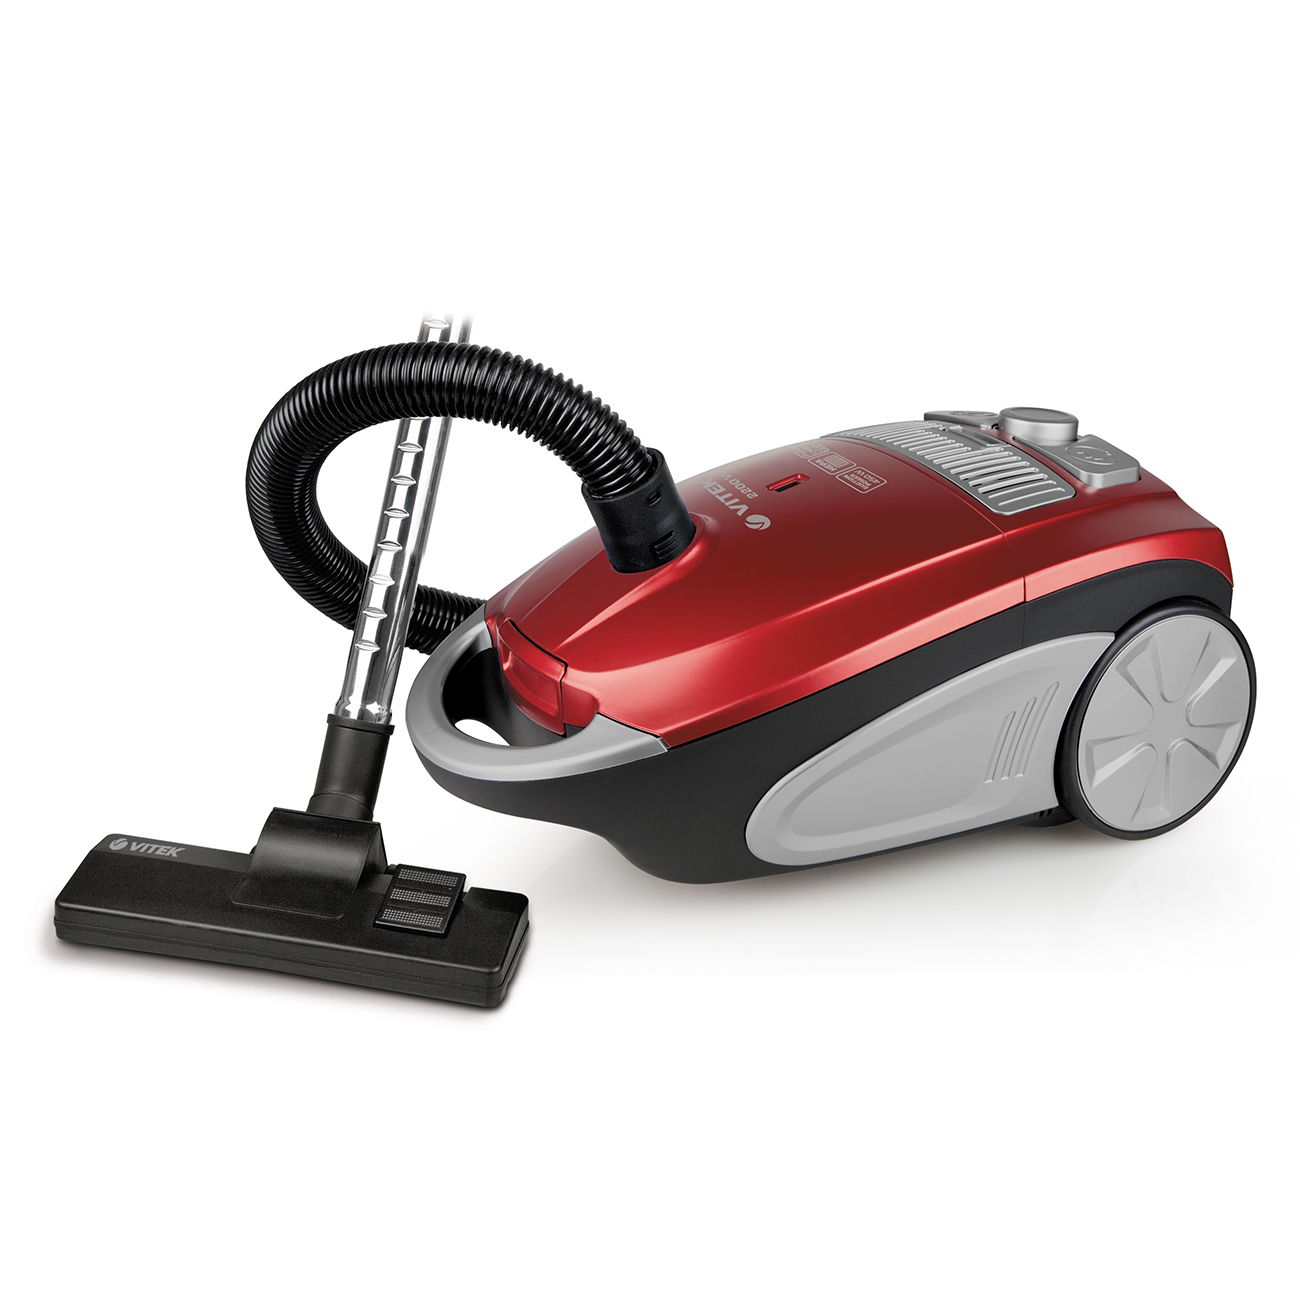 The electric vacuum cleaner Vitek VT-1892 R